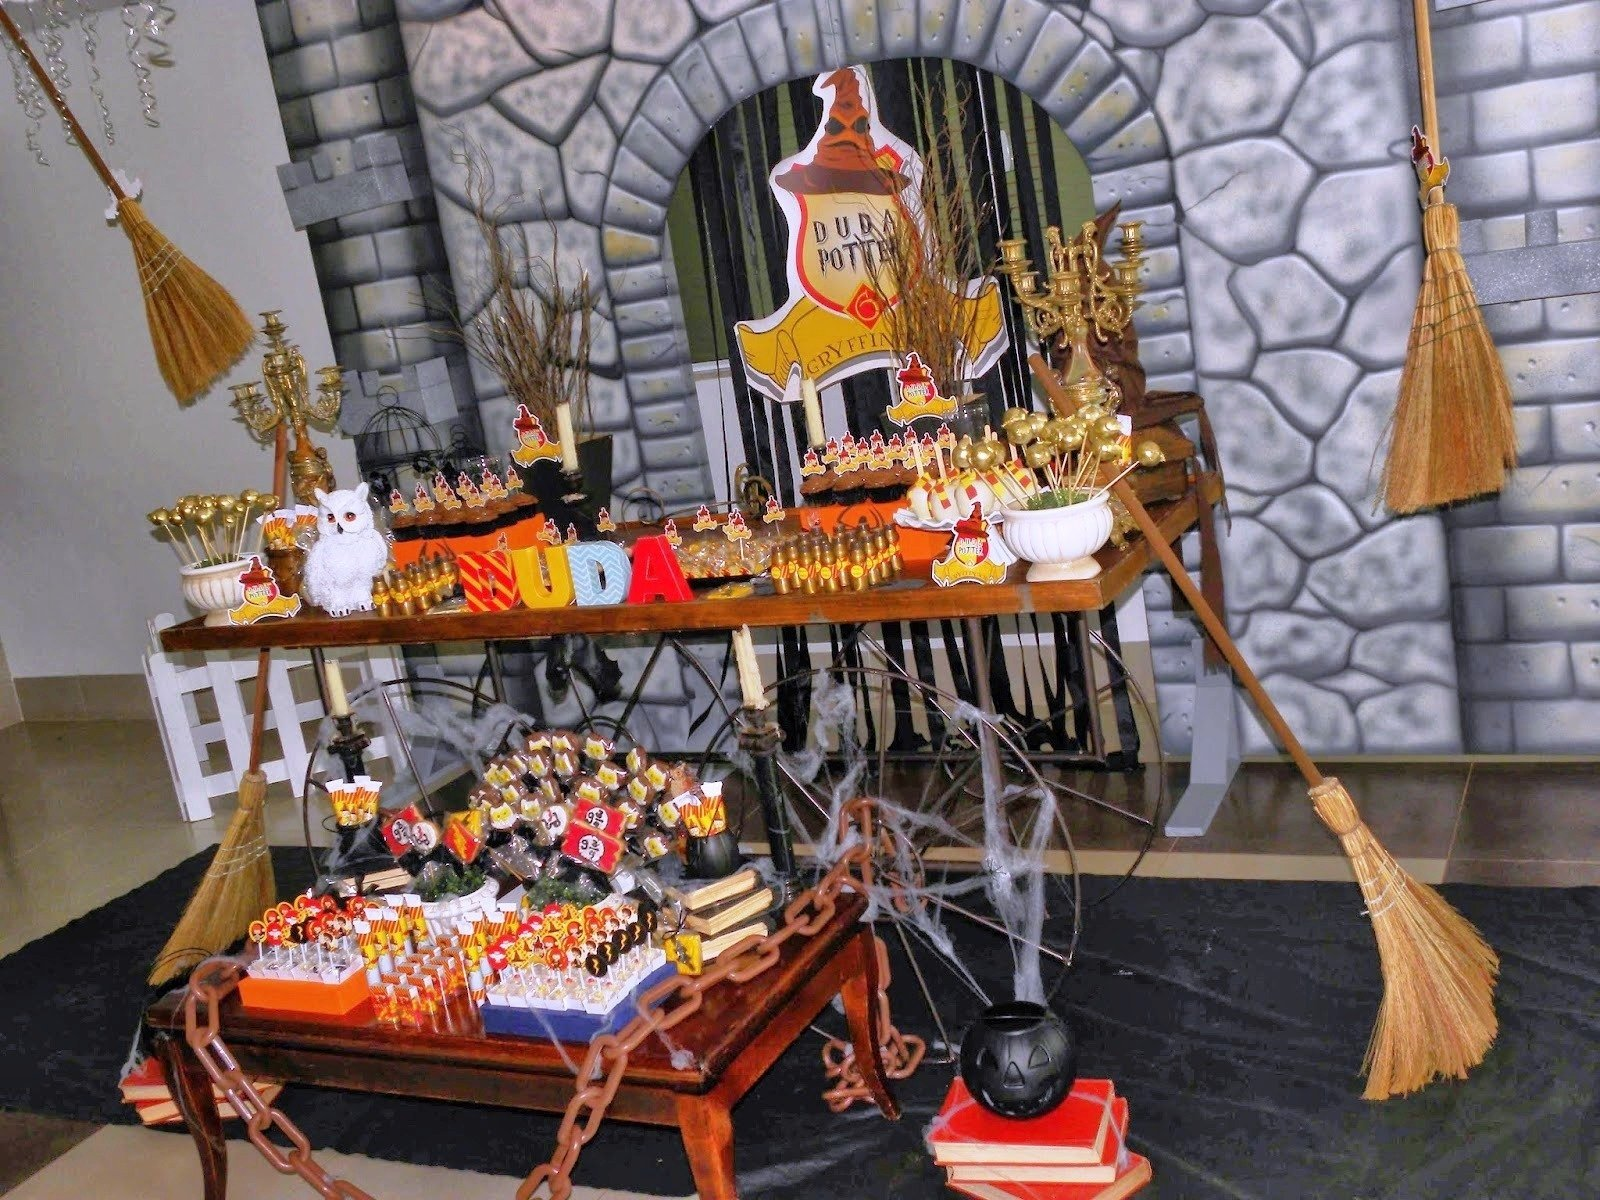 10 Famous Harry Potter Party Decoration Ideas harry potter party decorations utrails home design harry potter 2021